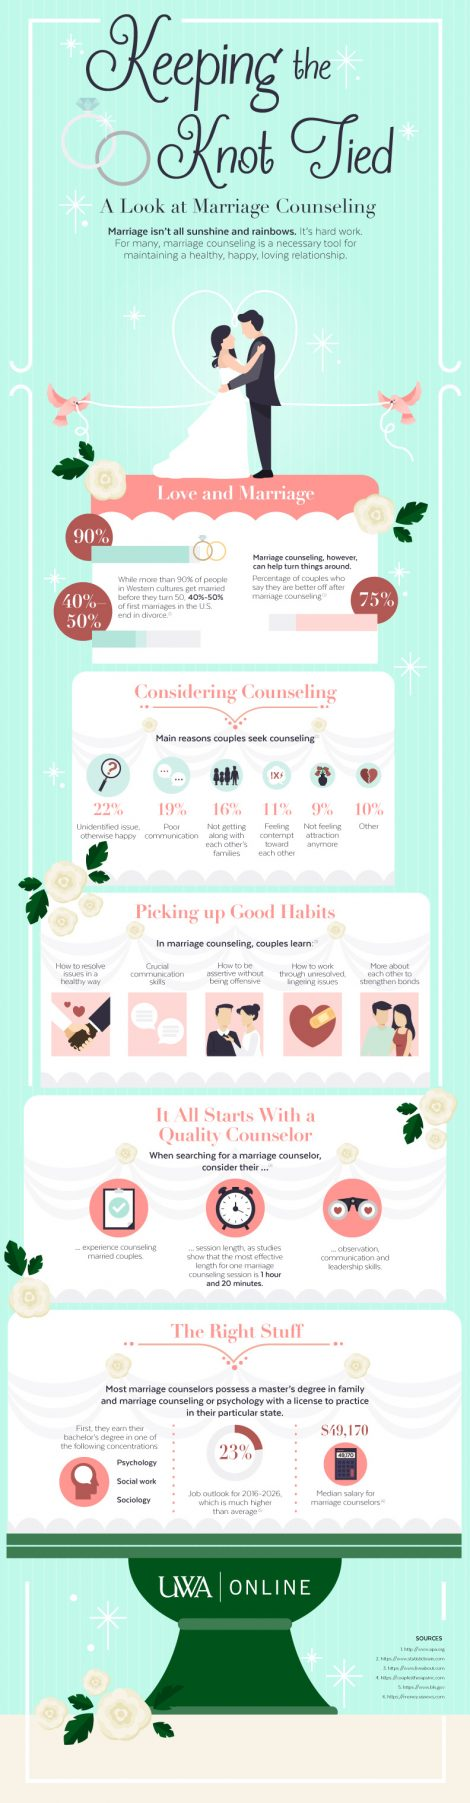 Keeping the Knot Tied, A Look at Marriage Counselling infographic